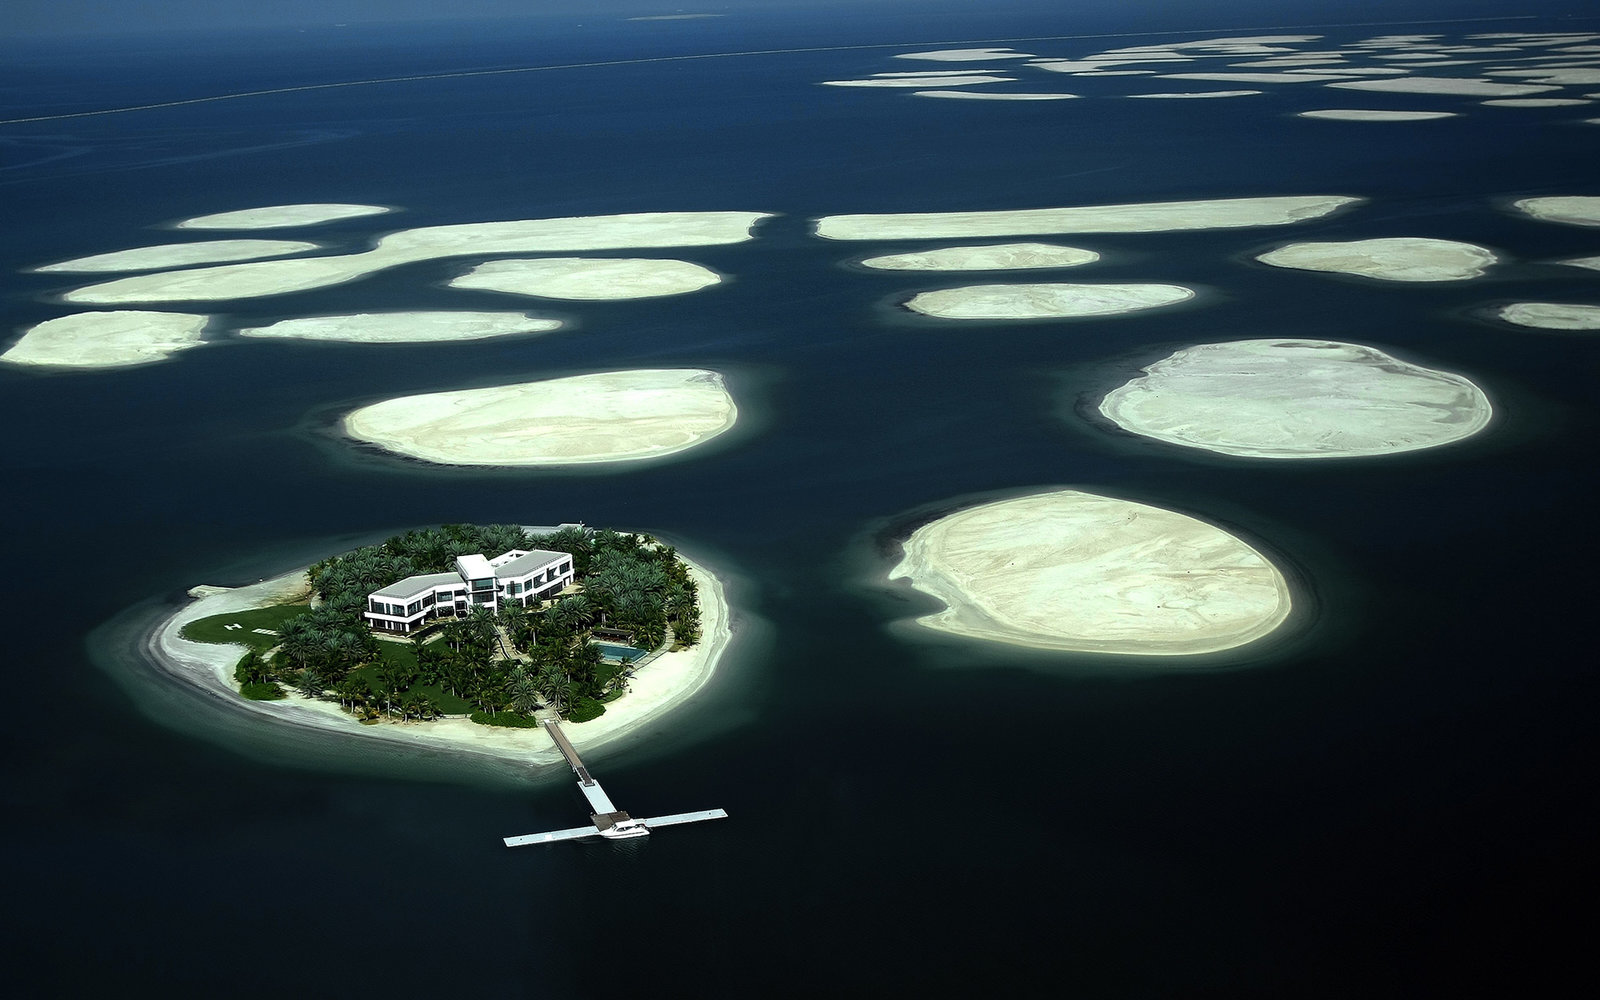 (FILES) A picture taken on December 21, 2009 shows an aerial view of a cluster of man-made islands known as  The World  by Emirati property developers Nakheel off the coast of Dubai. The real state project is stable, its developer Nakheel insists, despite